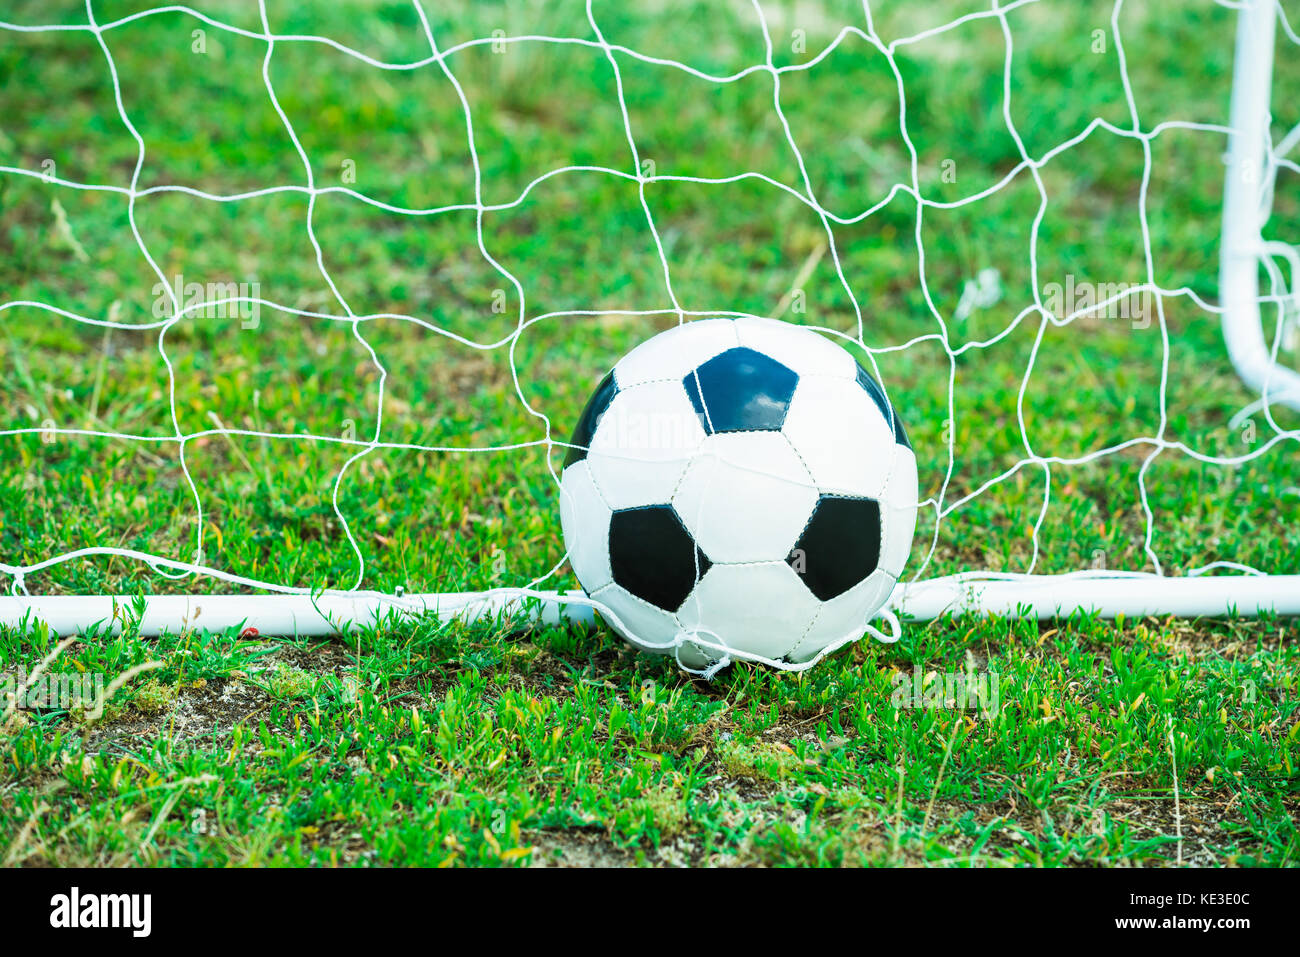 Football Goal Stock Photos Amp Football Goal Stock Images